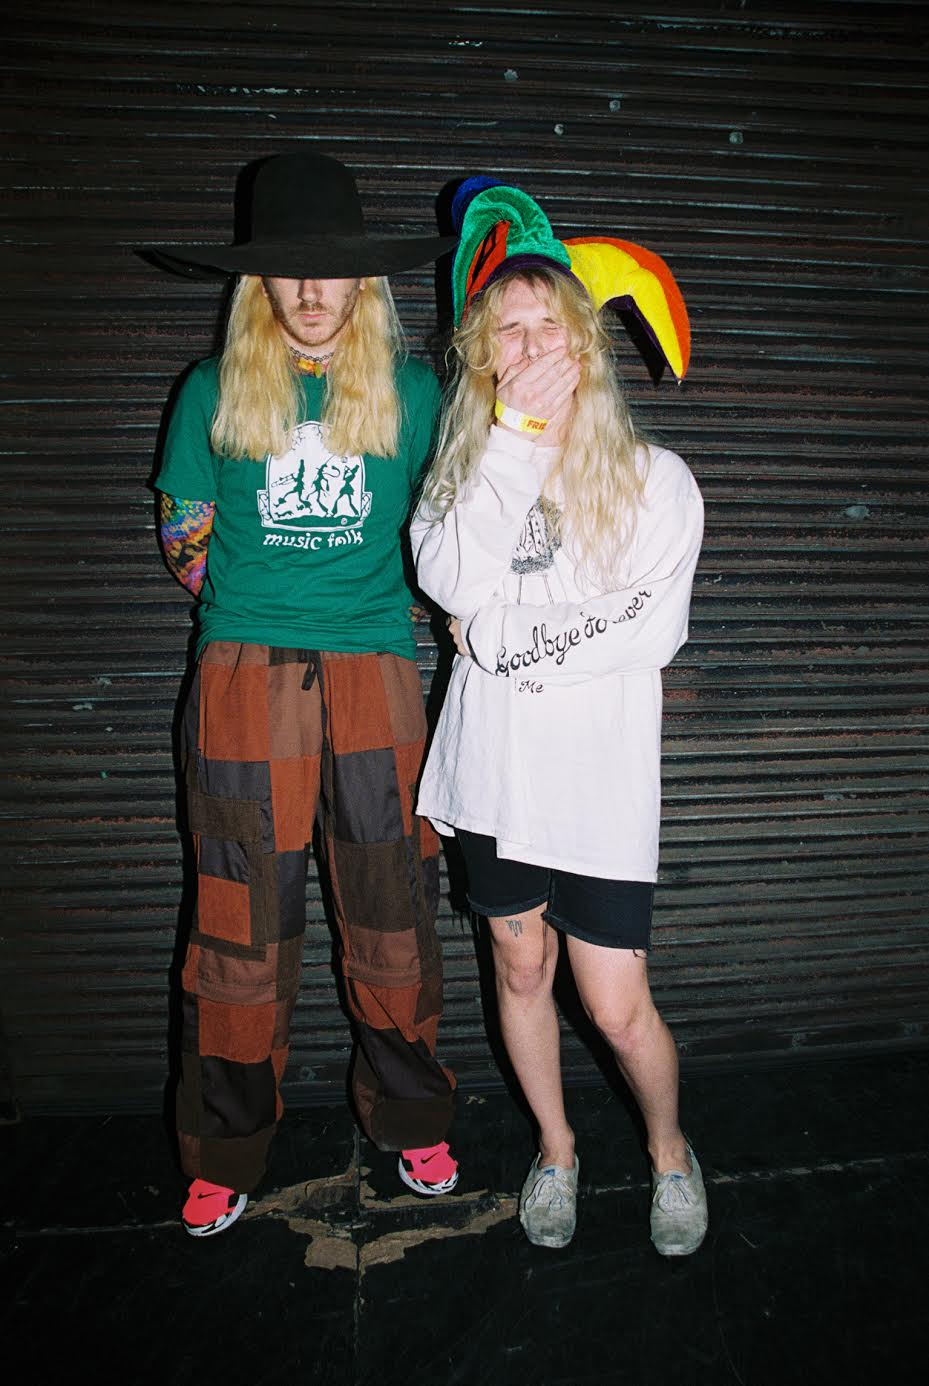 Dylan Brady (left) and Laura Les (right)